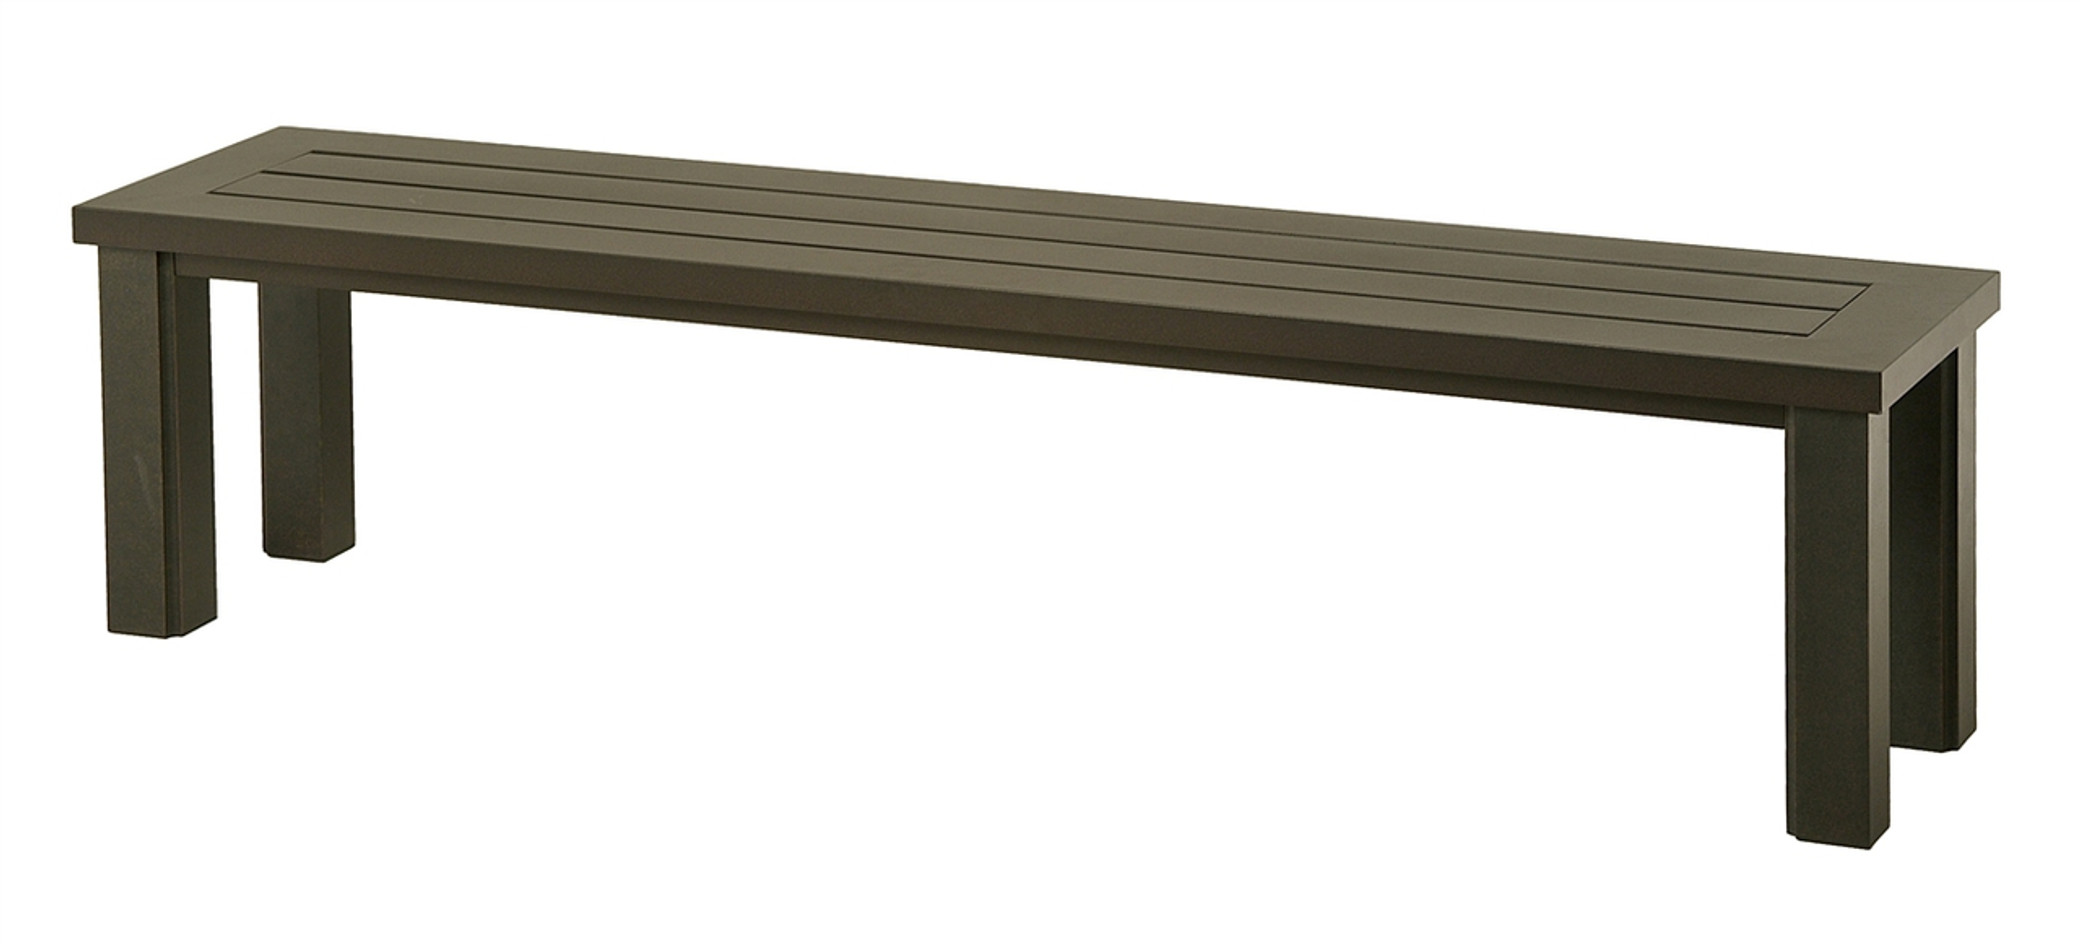 sight products modern mid at vintage century slat bench new